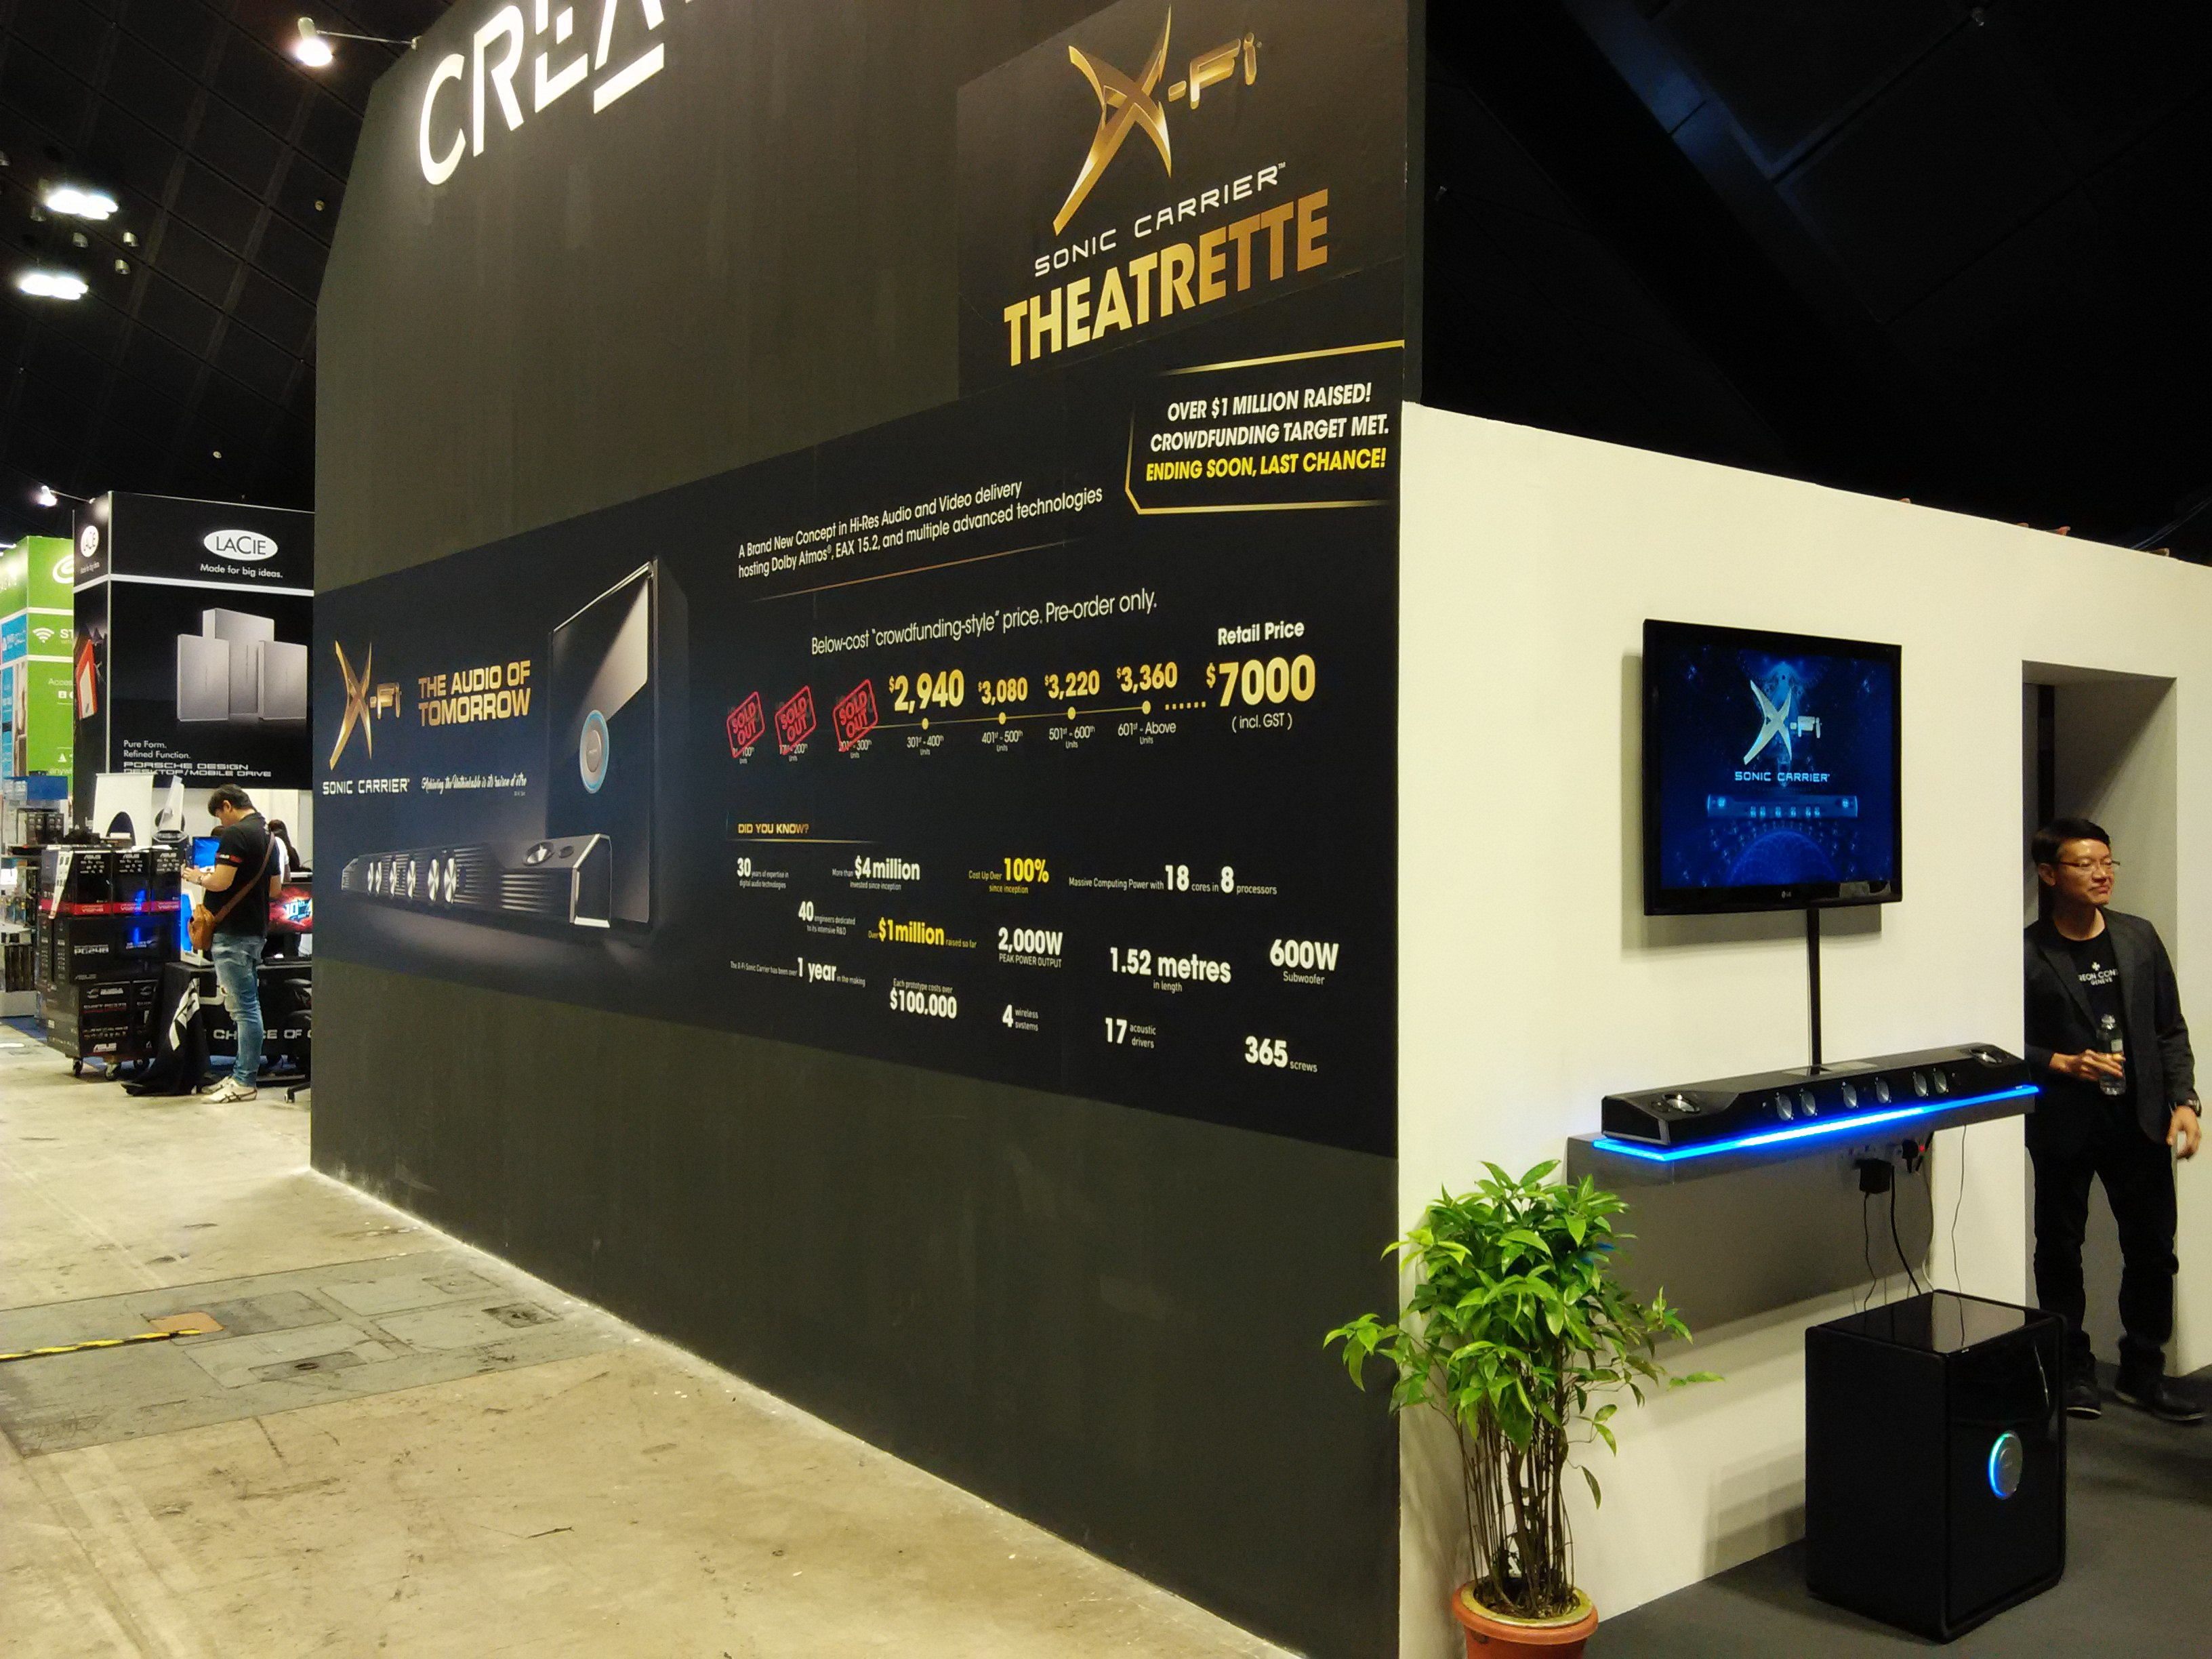 CREATIVE - Comex Show @ Suntec City (8 to 11 September 2016)